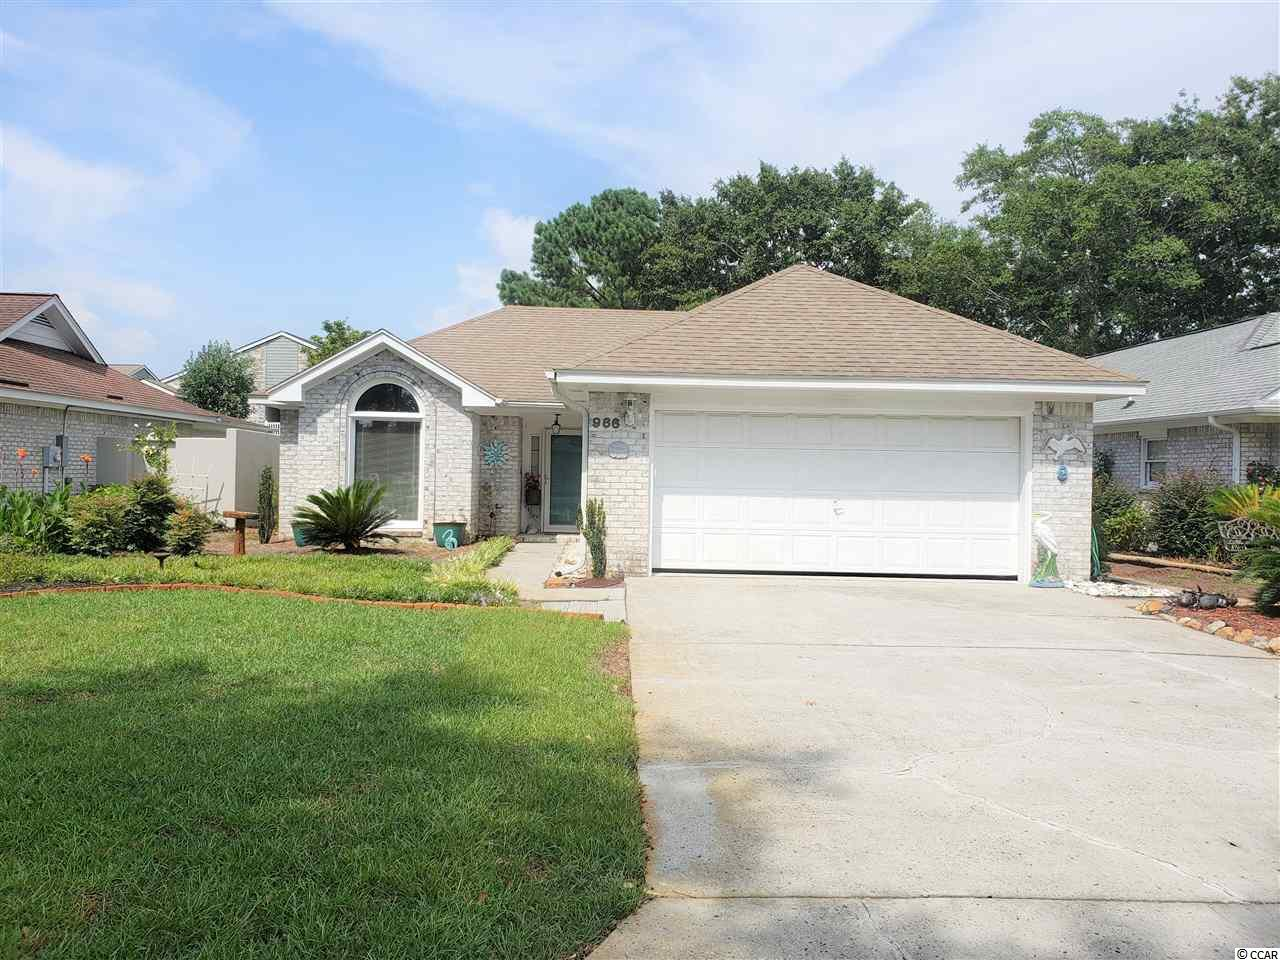 Beautifully maintained 2 bedroom 2 bathroom home in The Park. The Park community is centrally located in Myrtle Beach giving you easy access to shopping,hospitals, dining and the beach! This is a quiet community that is only a golf cart ride to the beach. All brick home with a private backyard with tall stucco walls. There are vaulted ceilings and skylights throughout the home which boasts a lot of natural light. Come check out this must see home in a unique community.